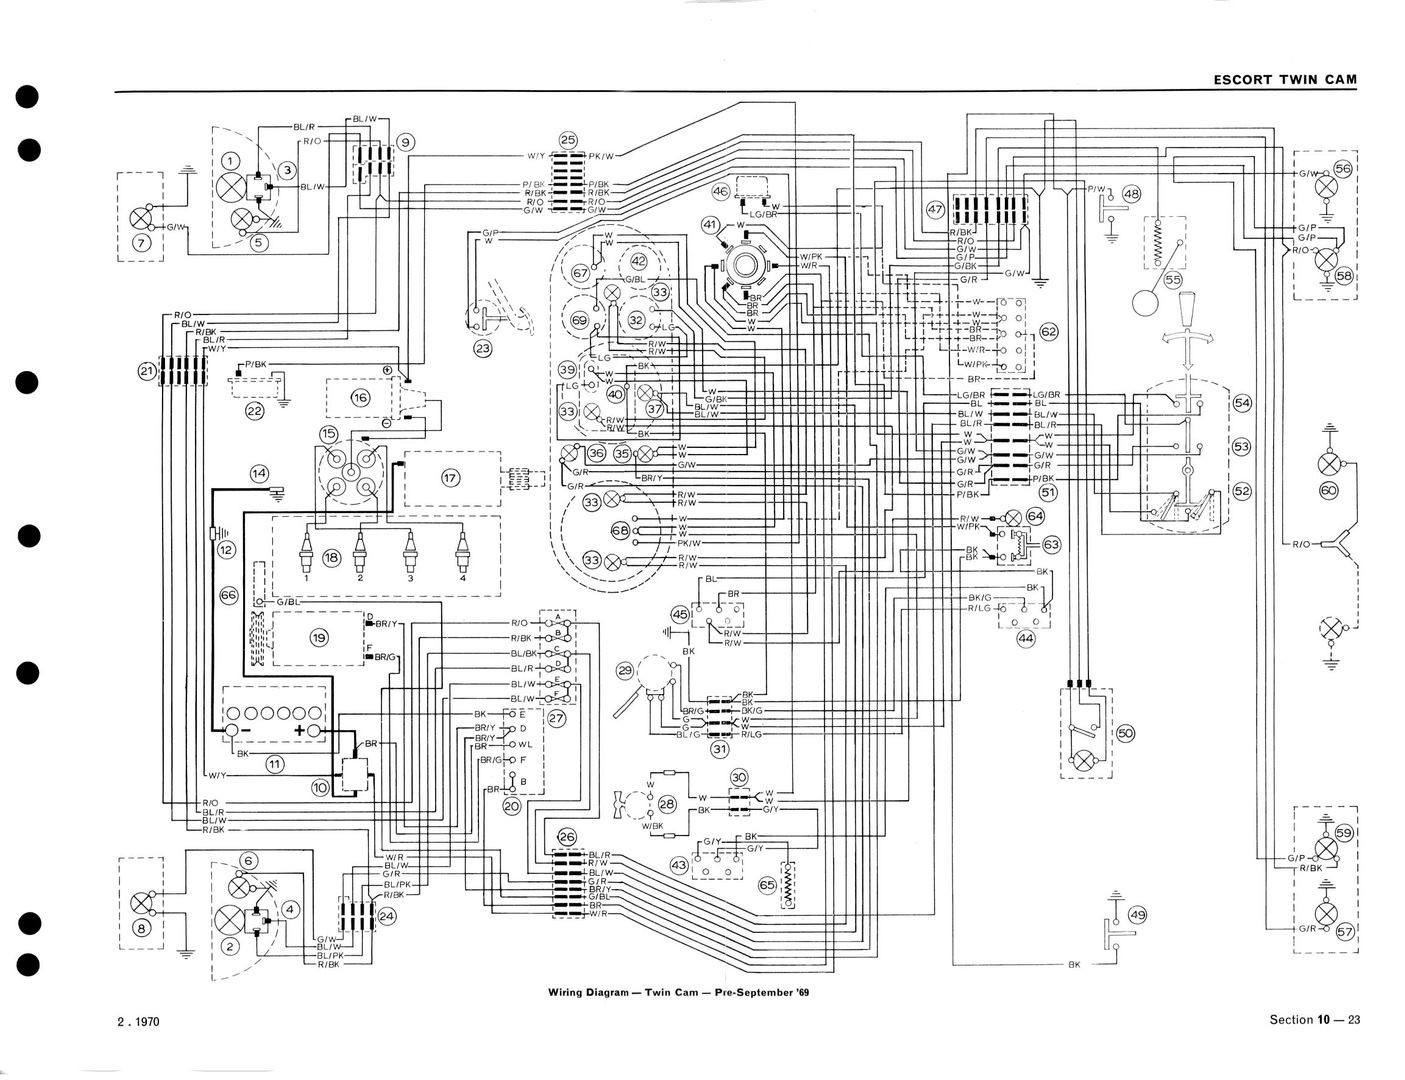 99 ford Escort Engine Diagram ford Zx2 Fuse Diagram Wiring Diagram toolbox Of 99 ford Escort Engine Diagram